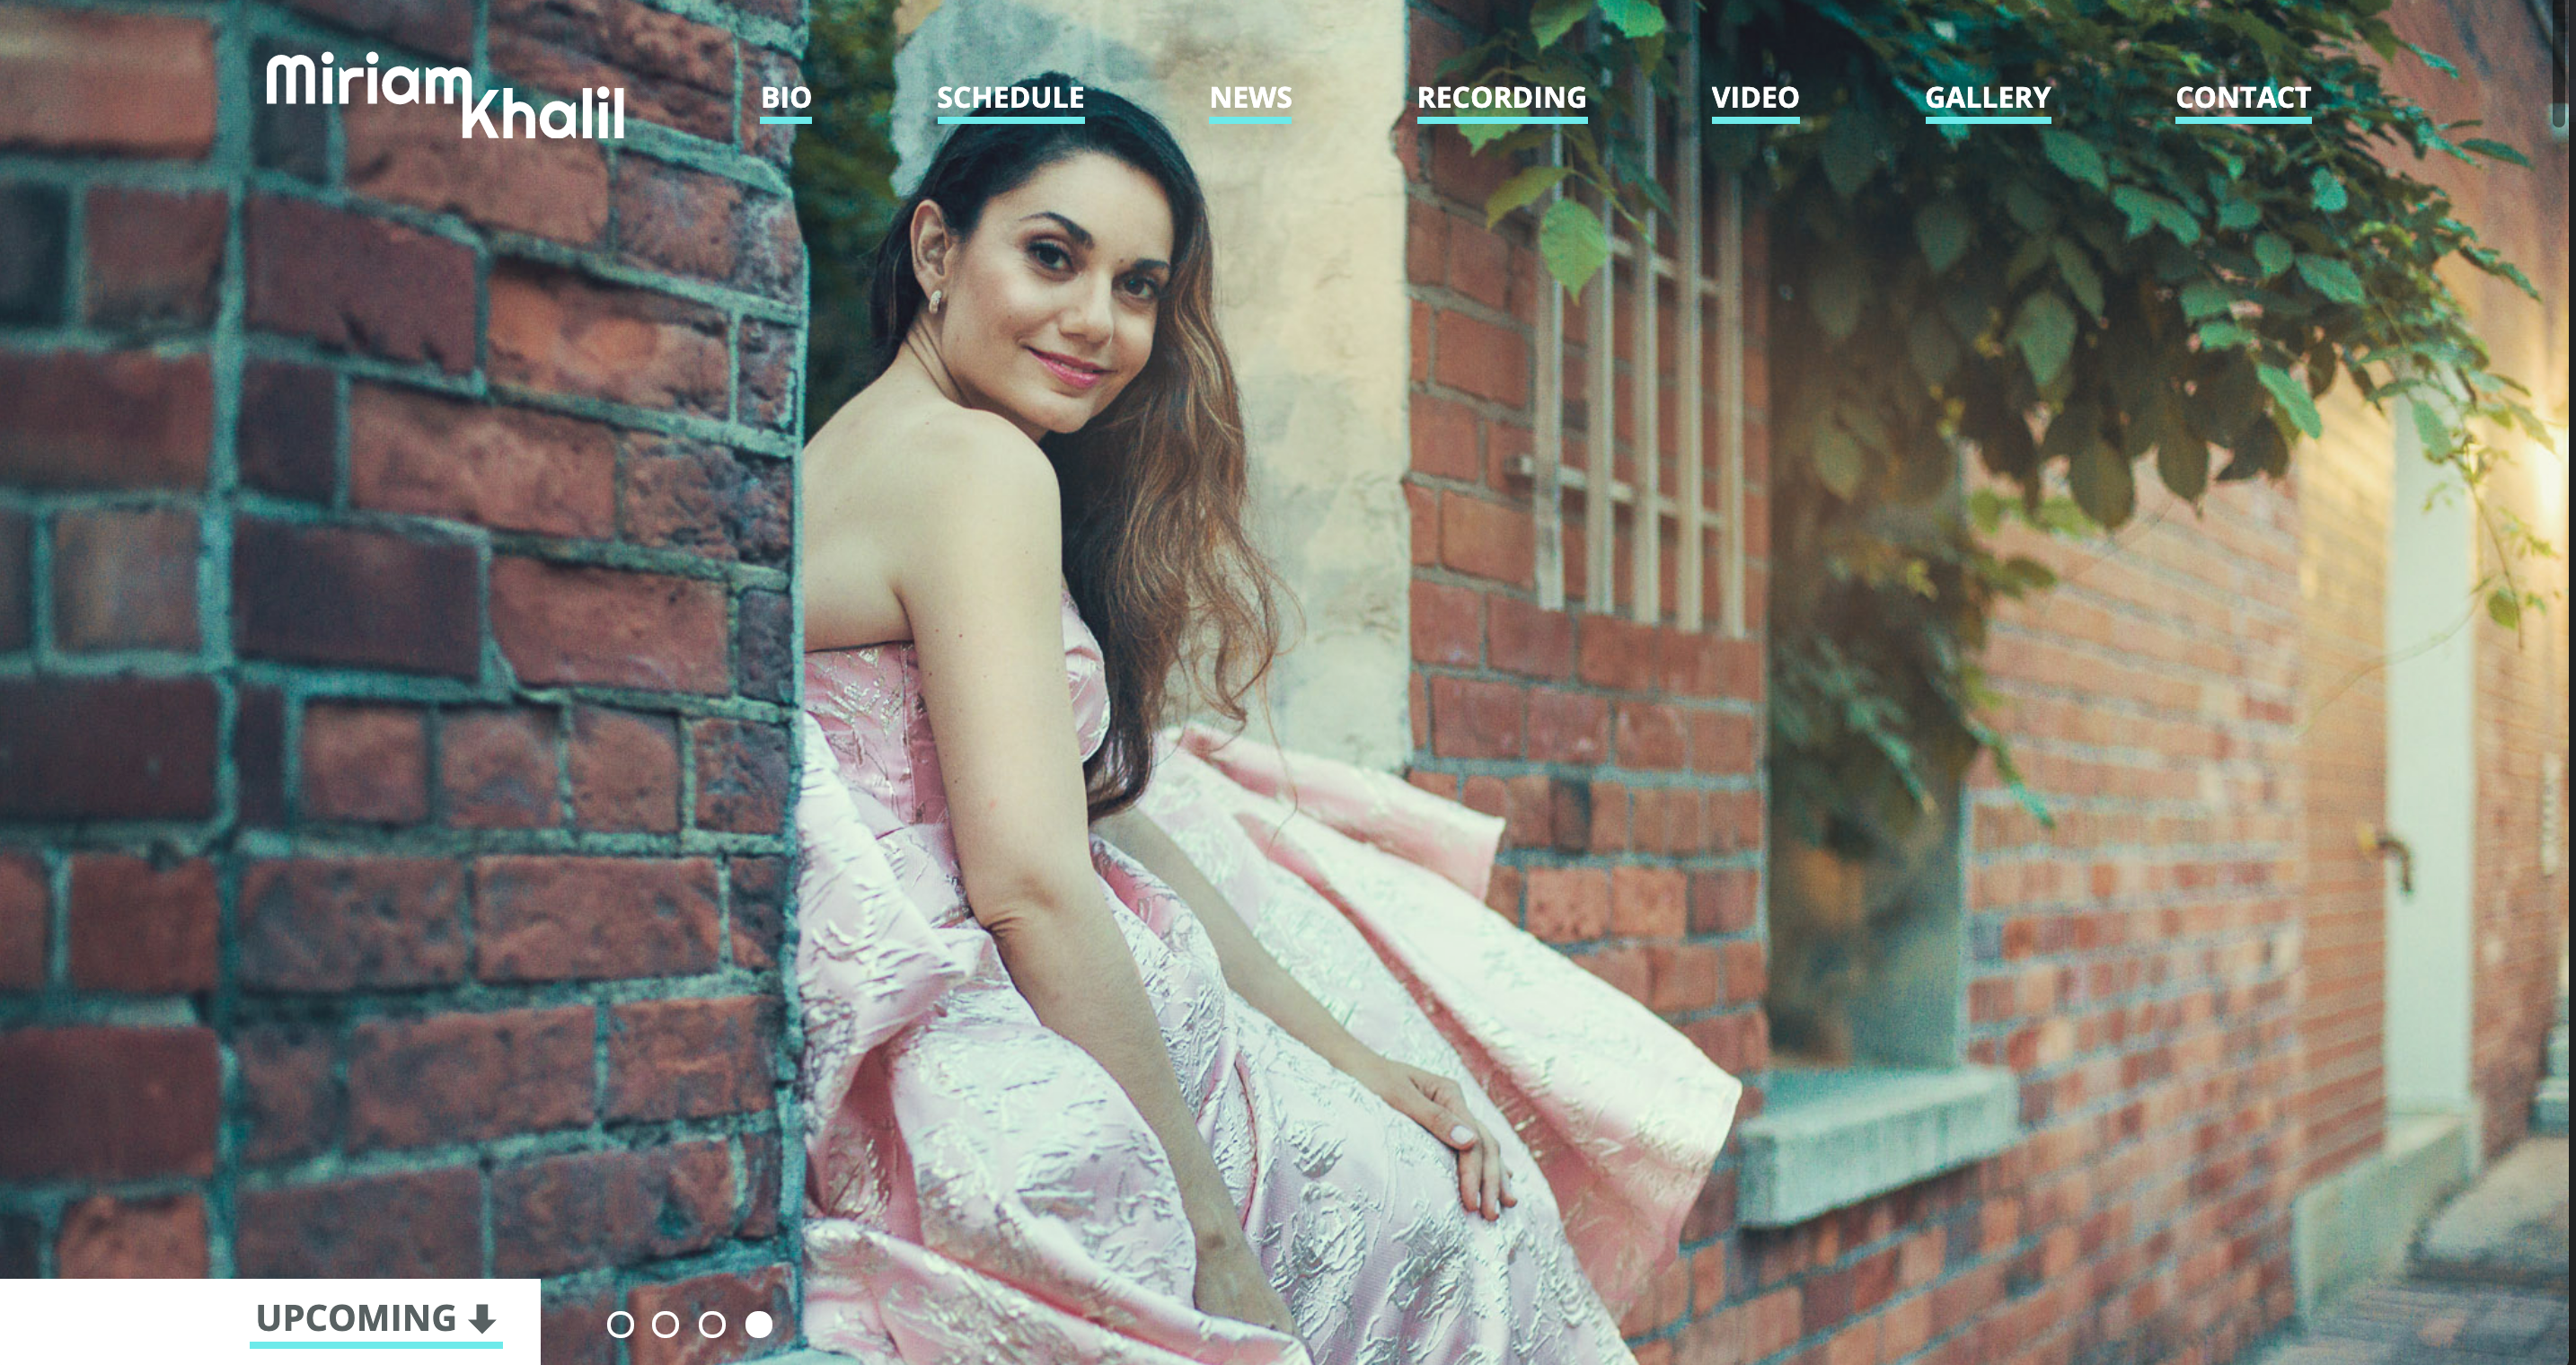 screenshot of opera singer Miriam Khalil's website